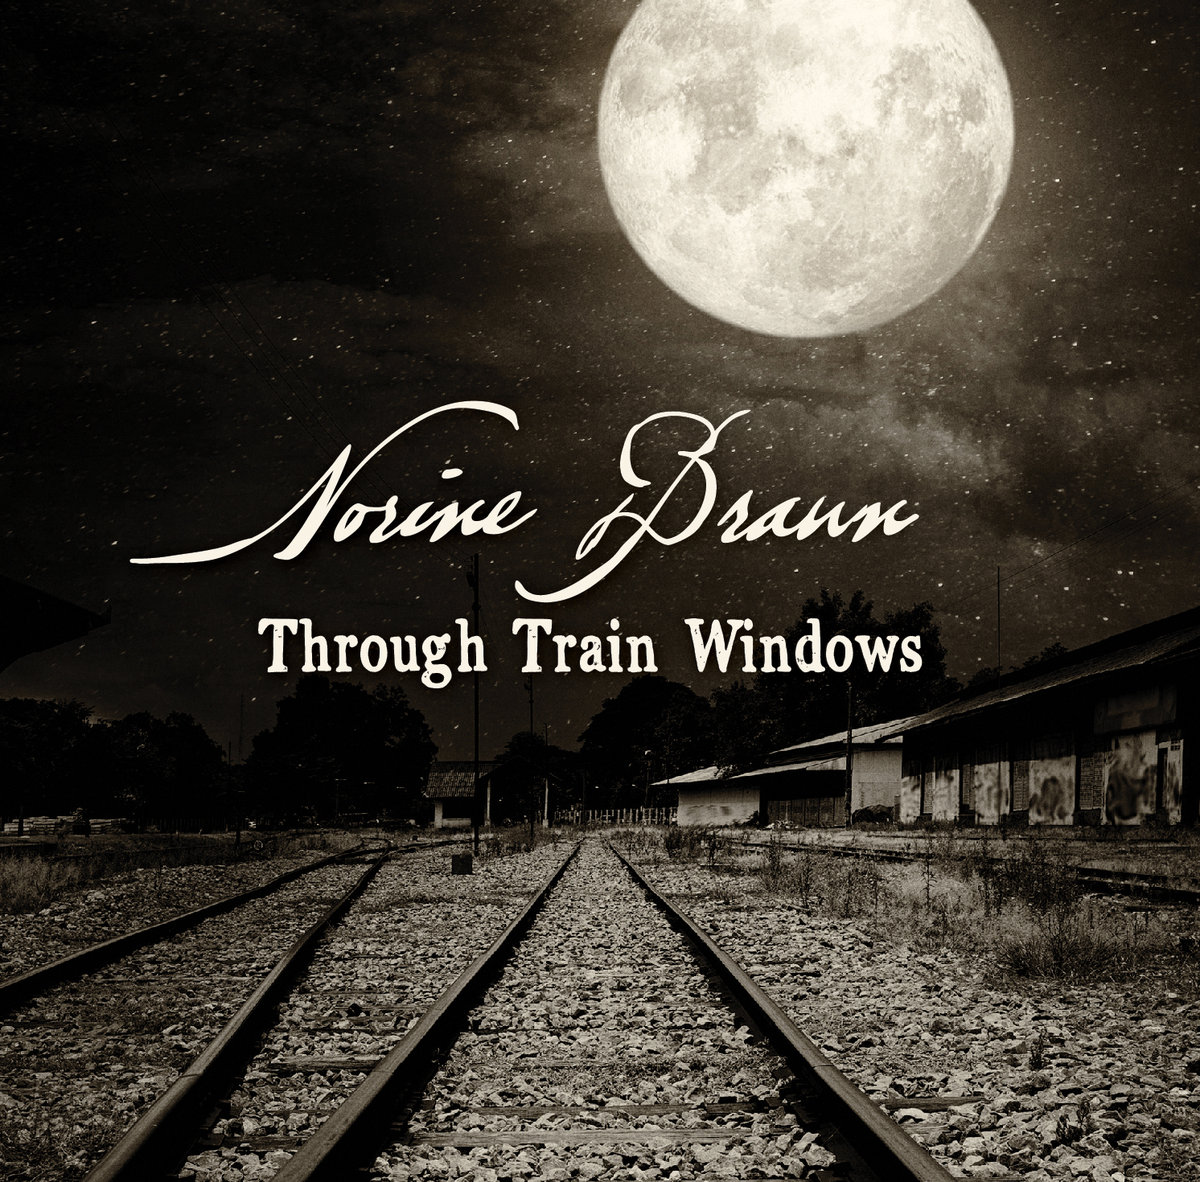 Norine Braun's Through Train Windows Album